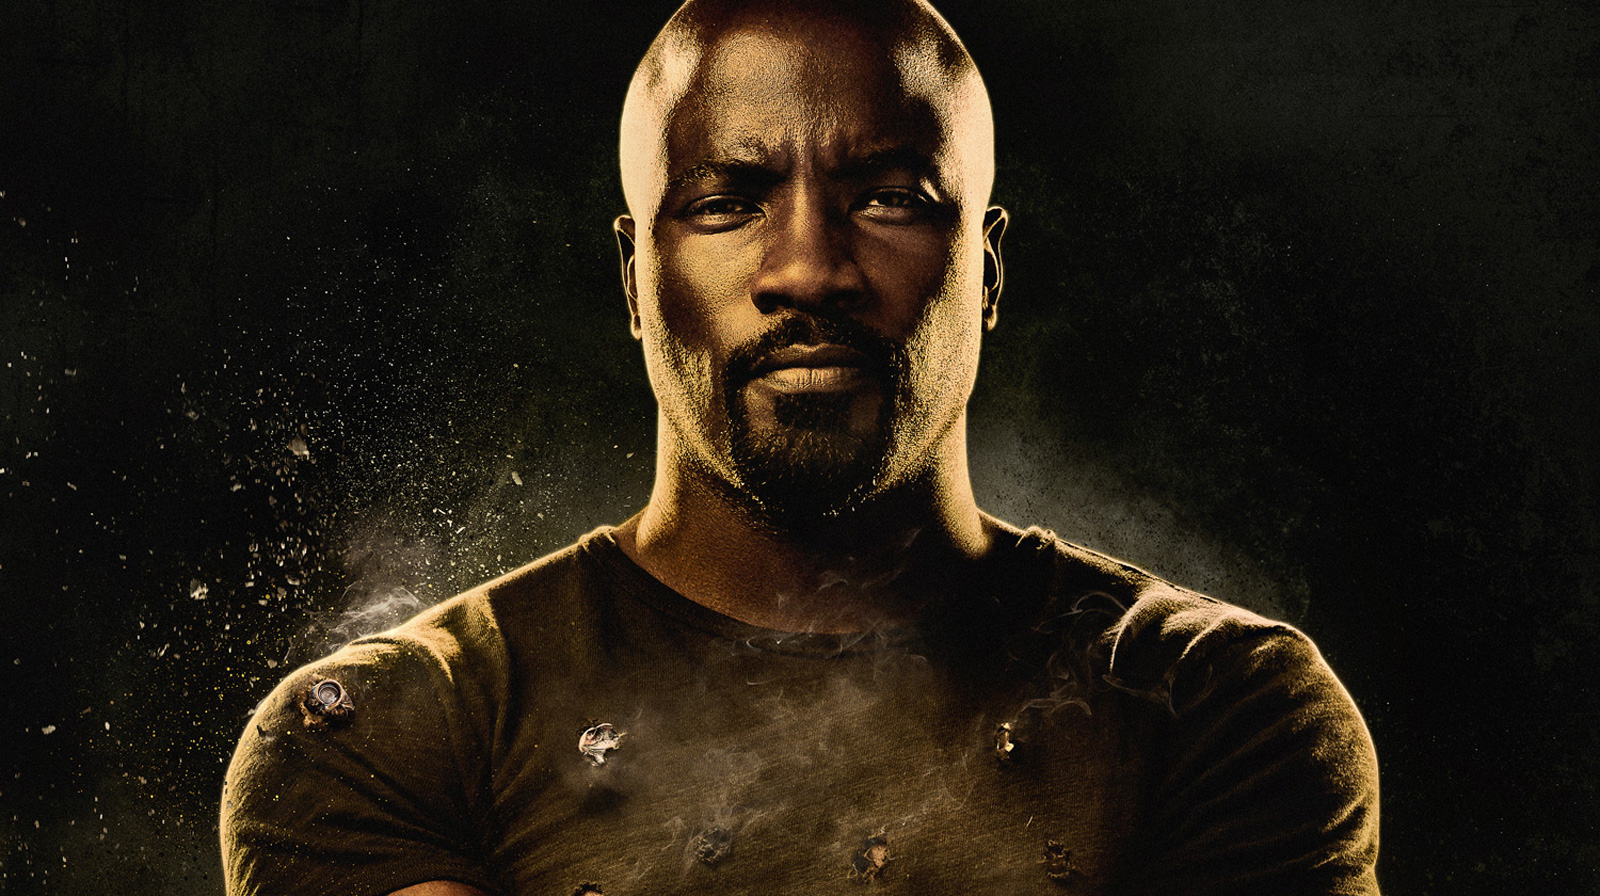 Luke Cage goes to war in Harlem in second trailer for Marvel's